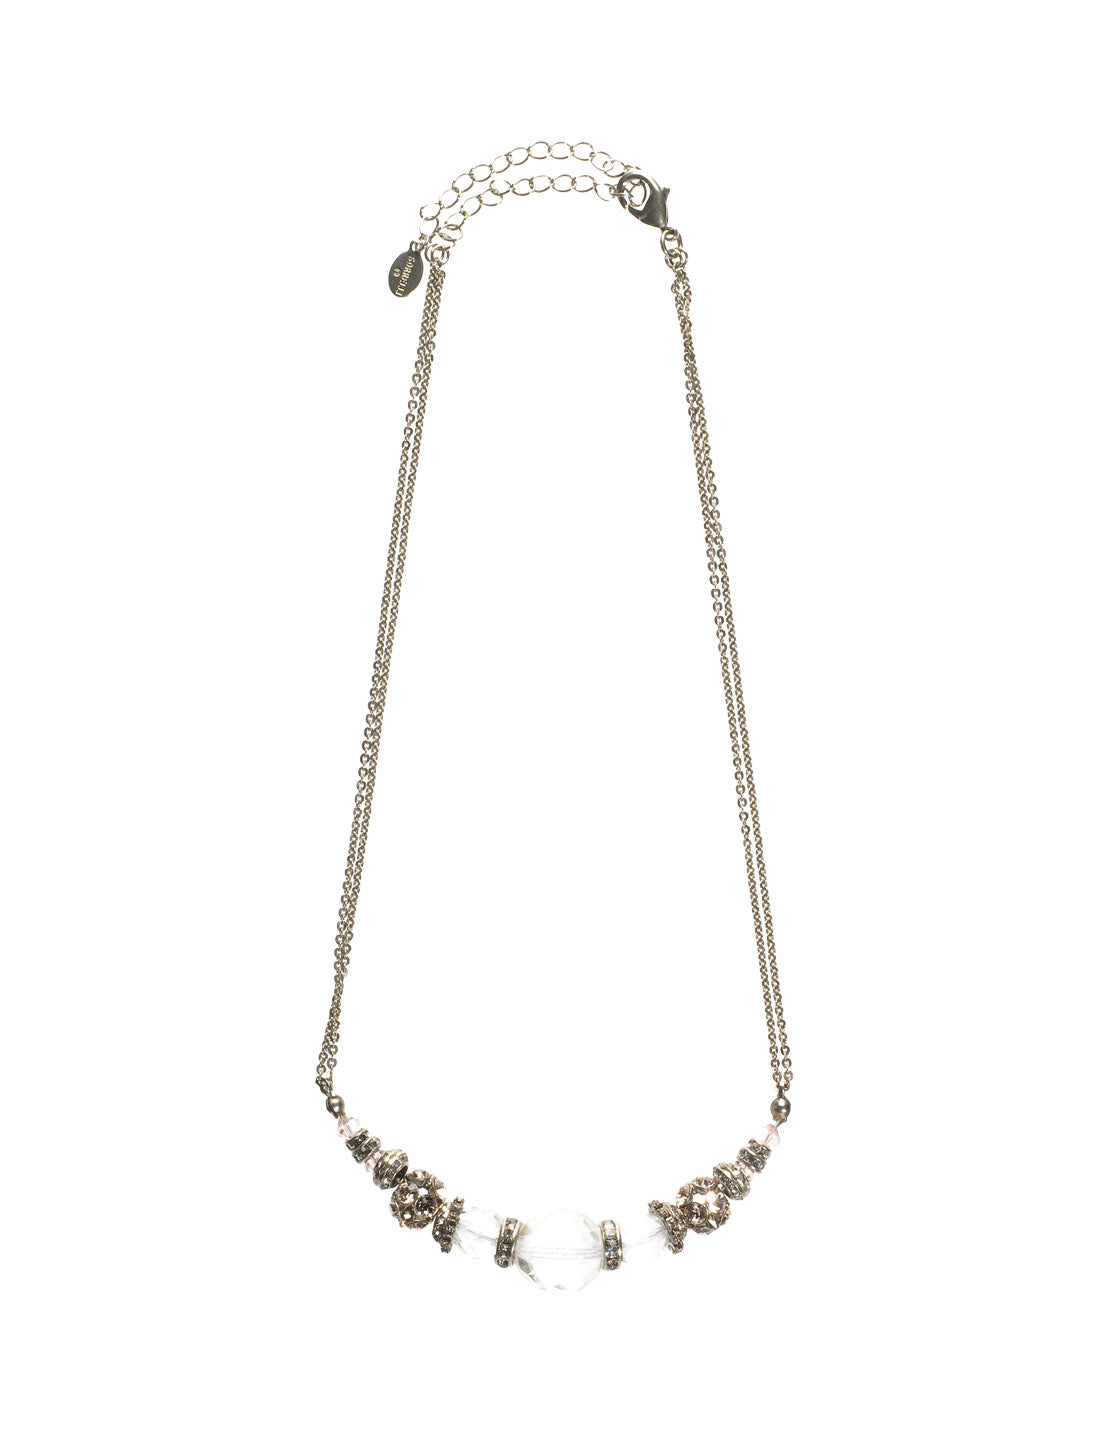 Crystal Beaded Chain Tennis Necklace - NCE5ASSNB